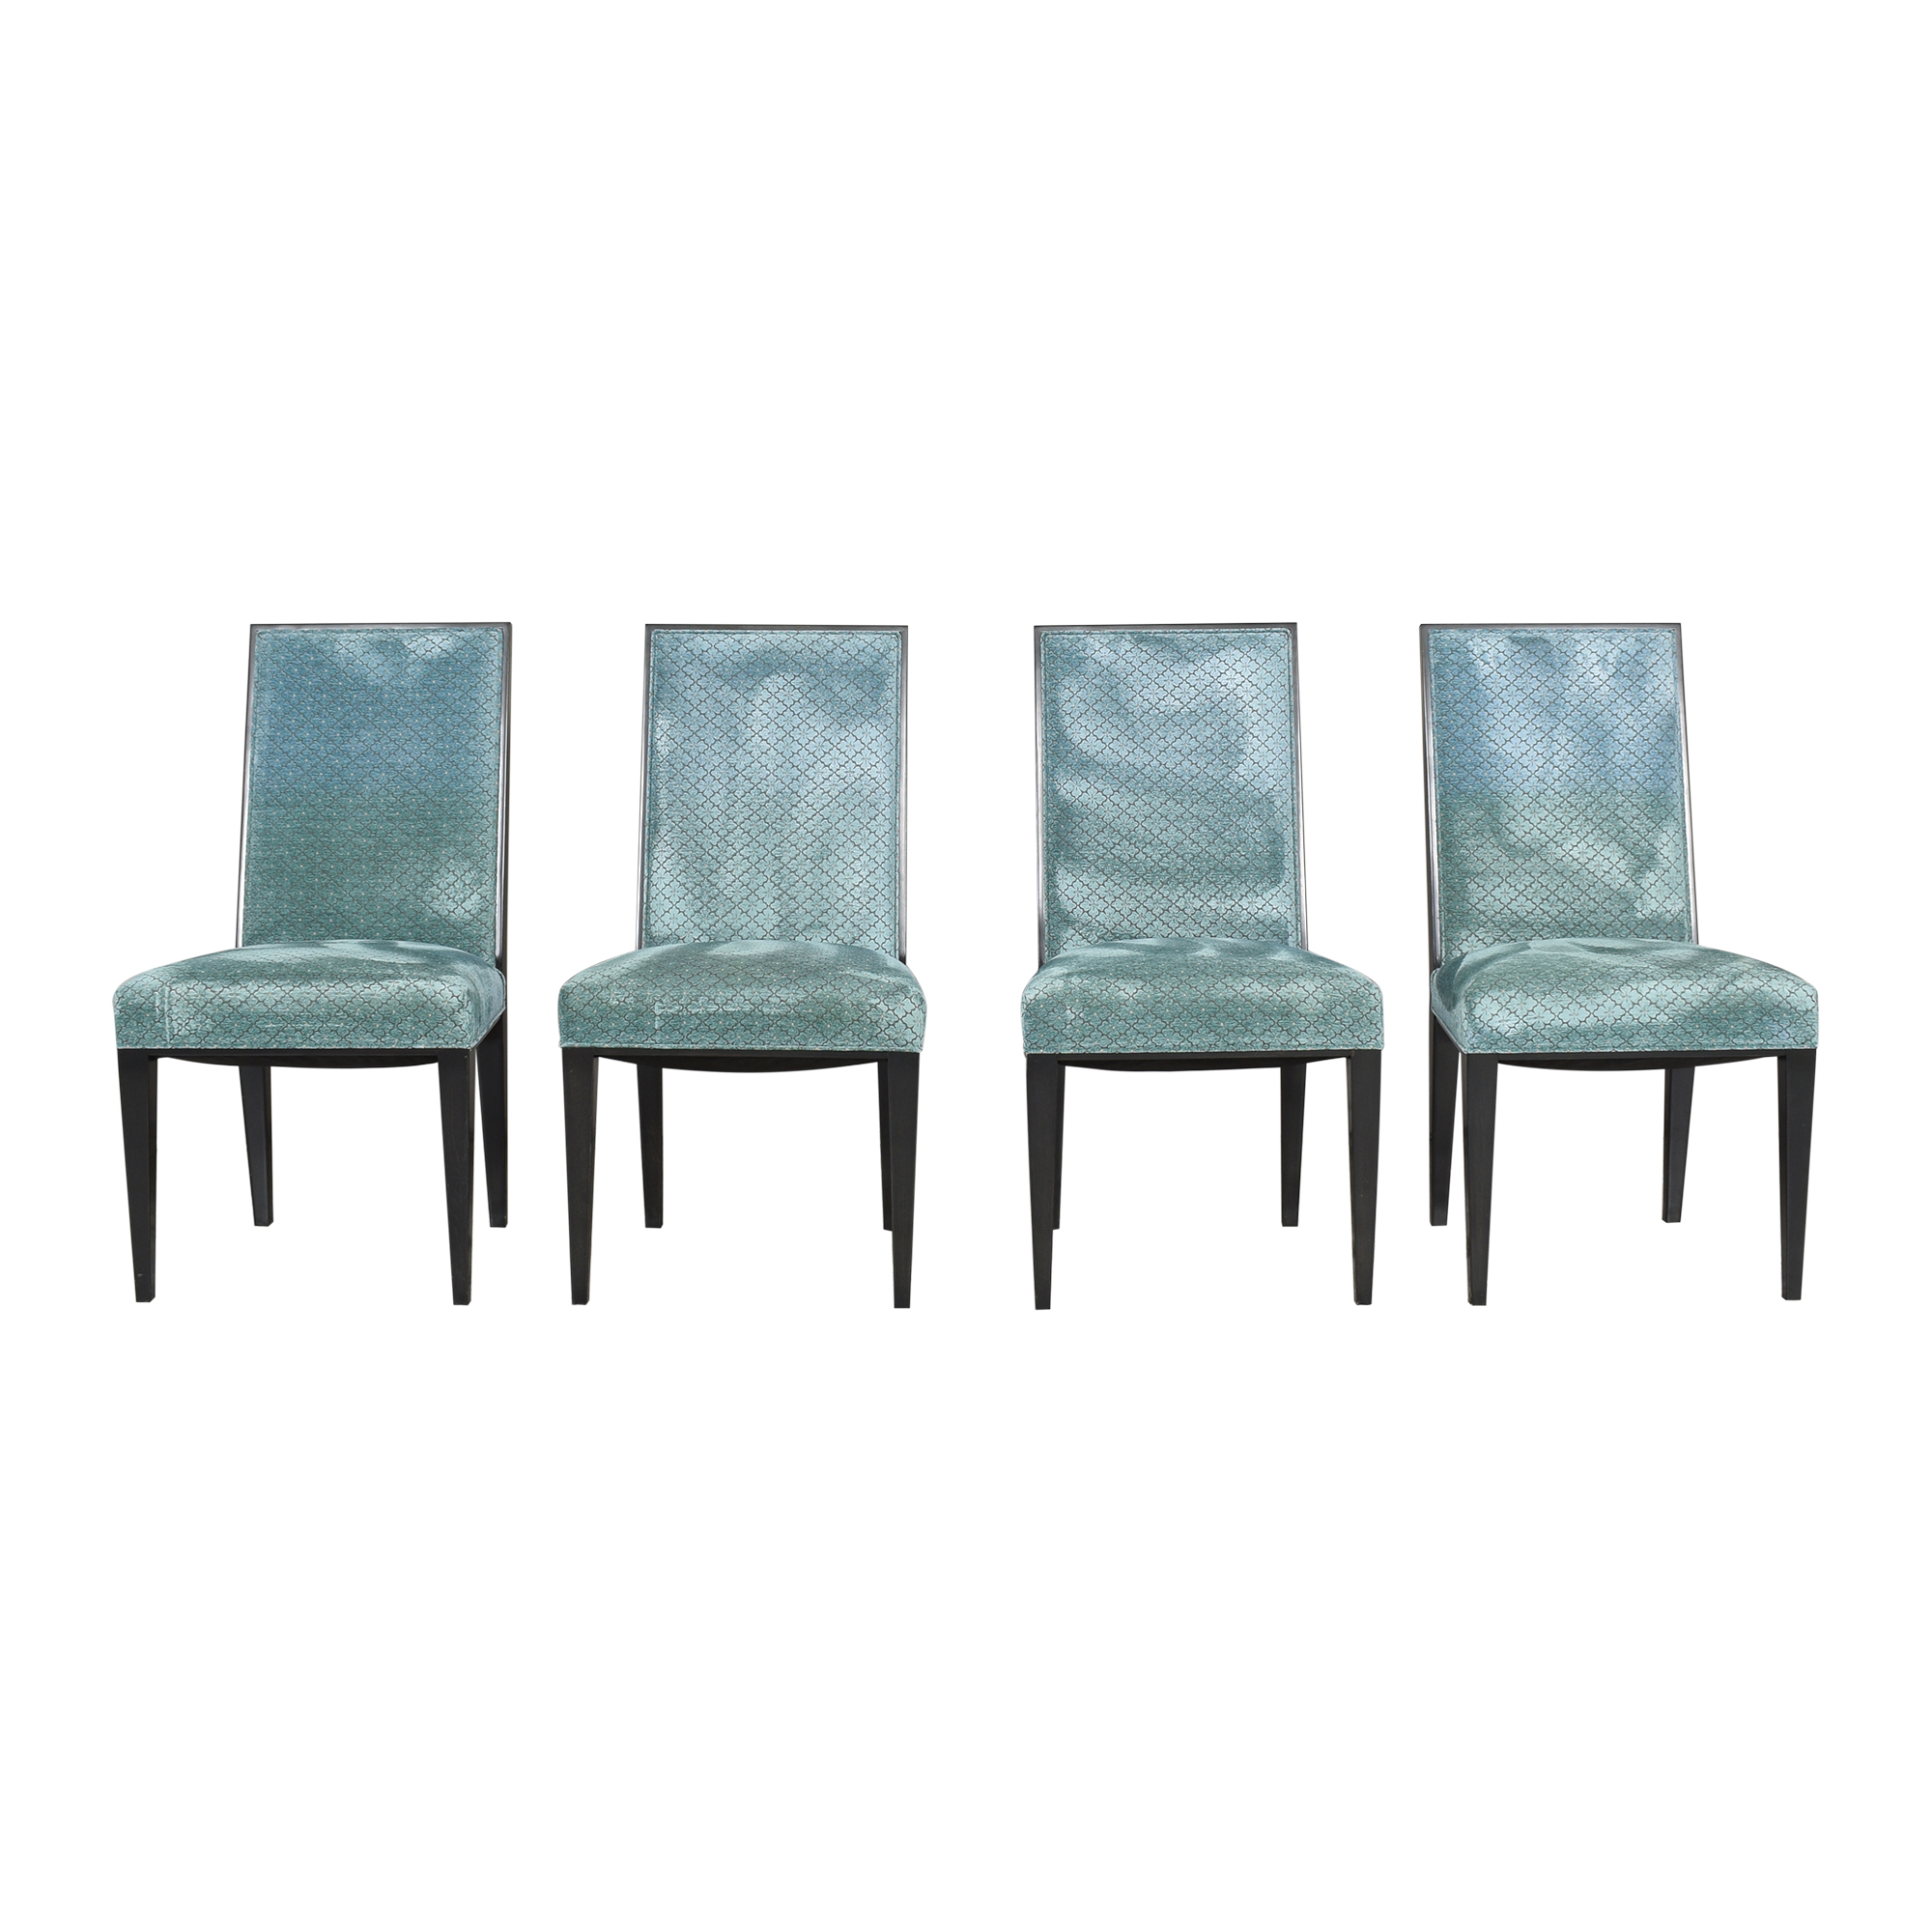 Artistic Frame Artistic Frame Chantiers Dining Chairs blue & black